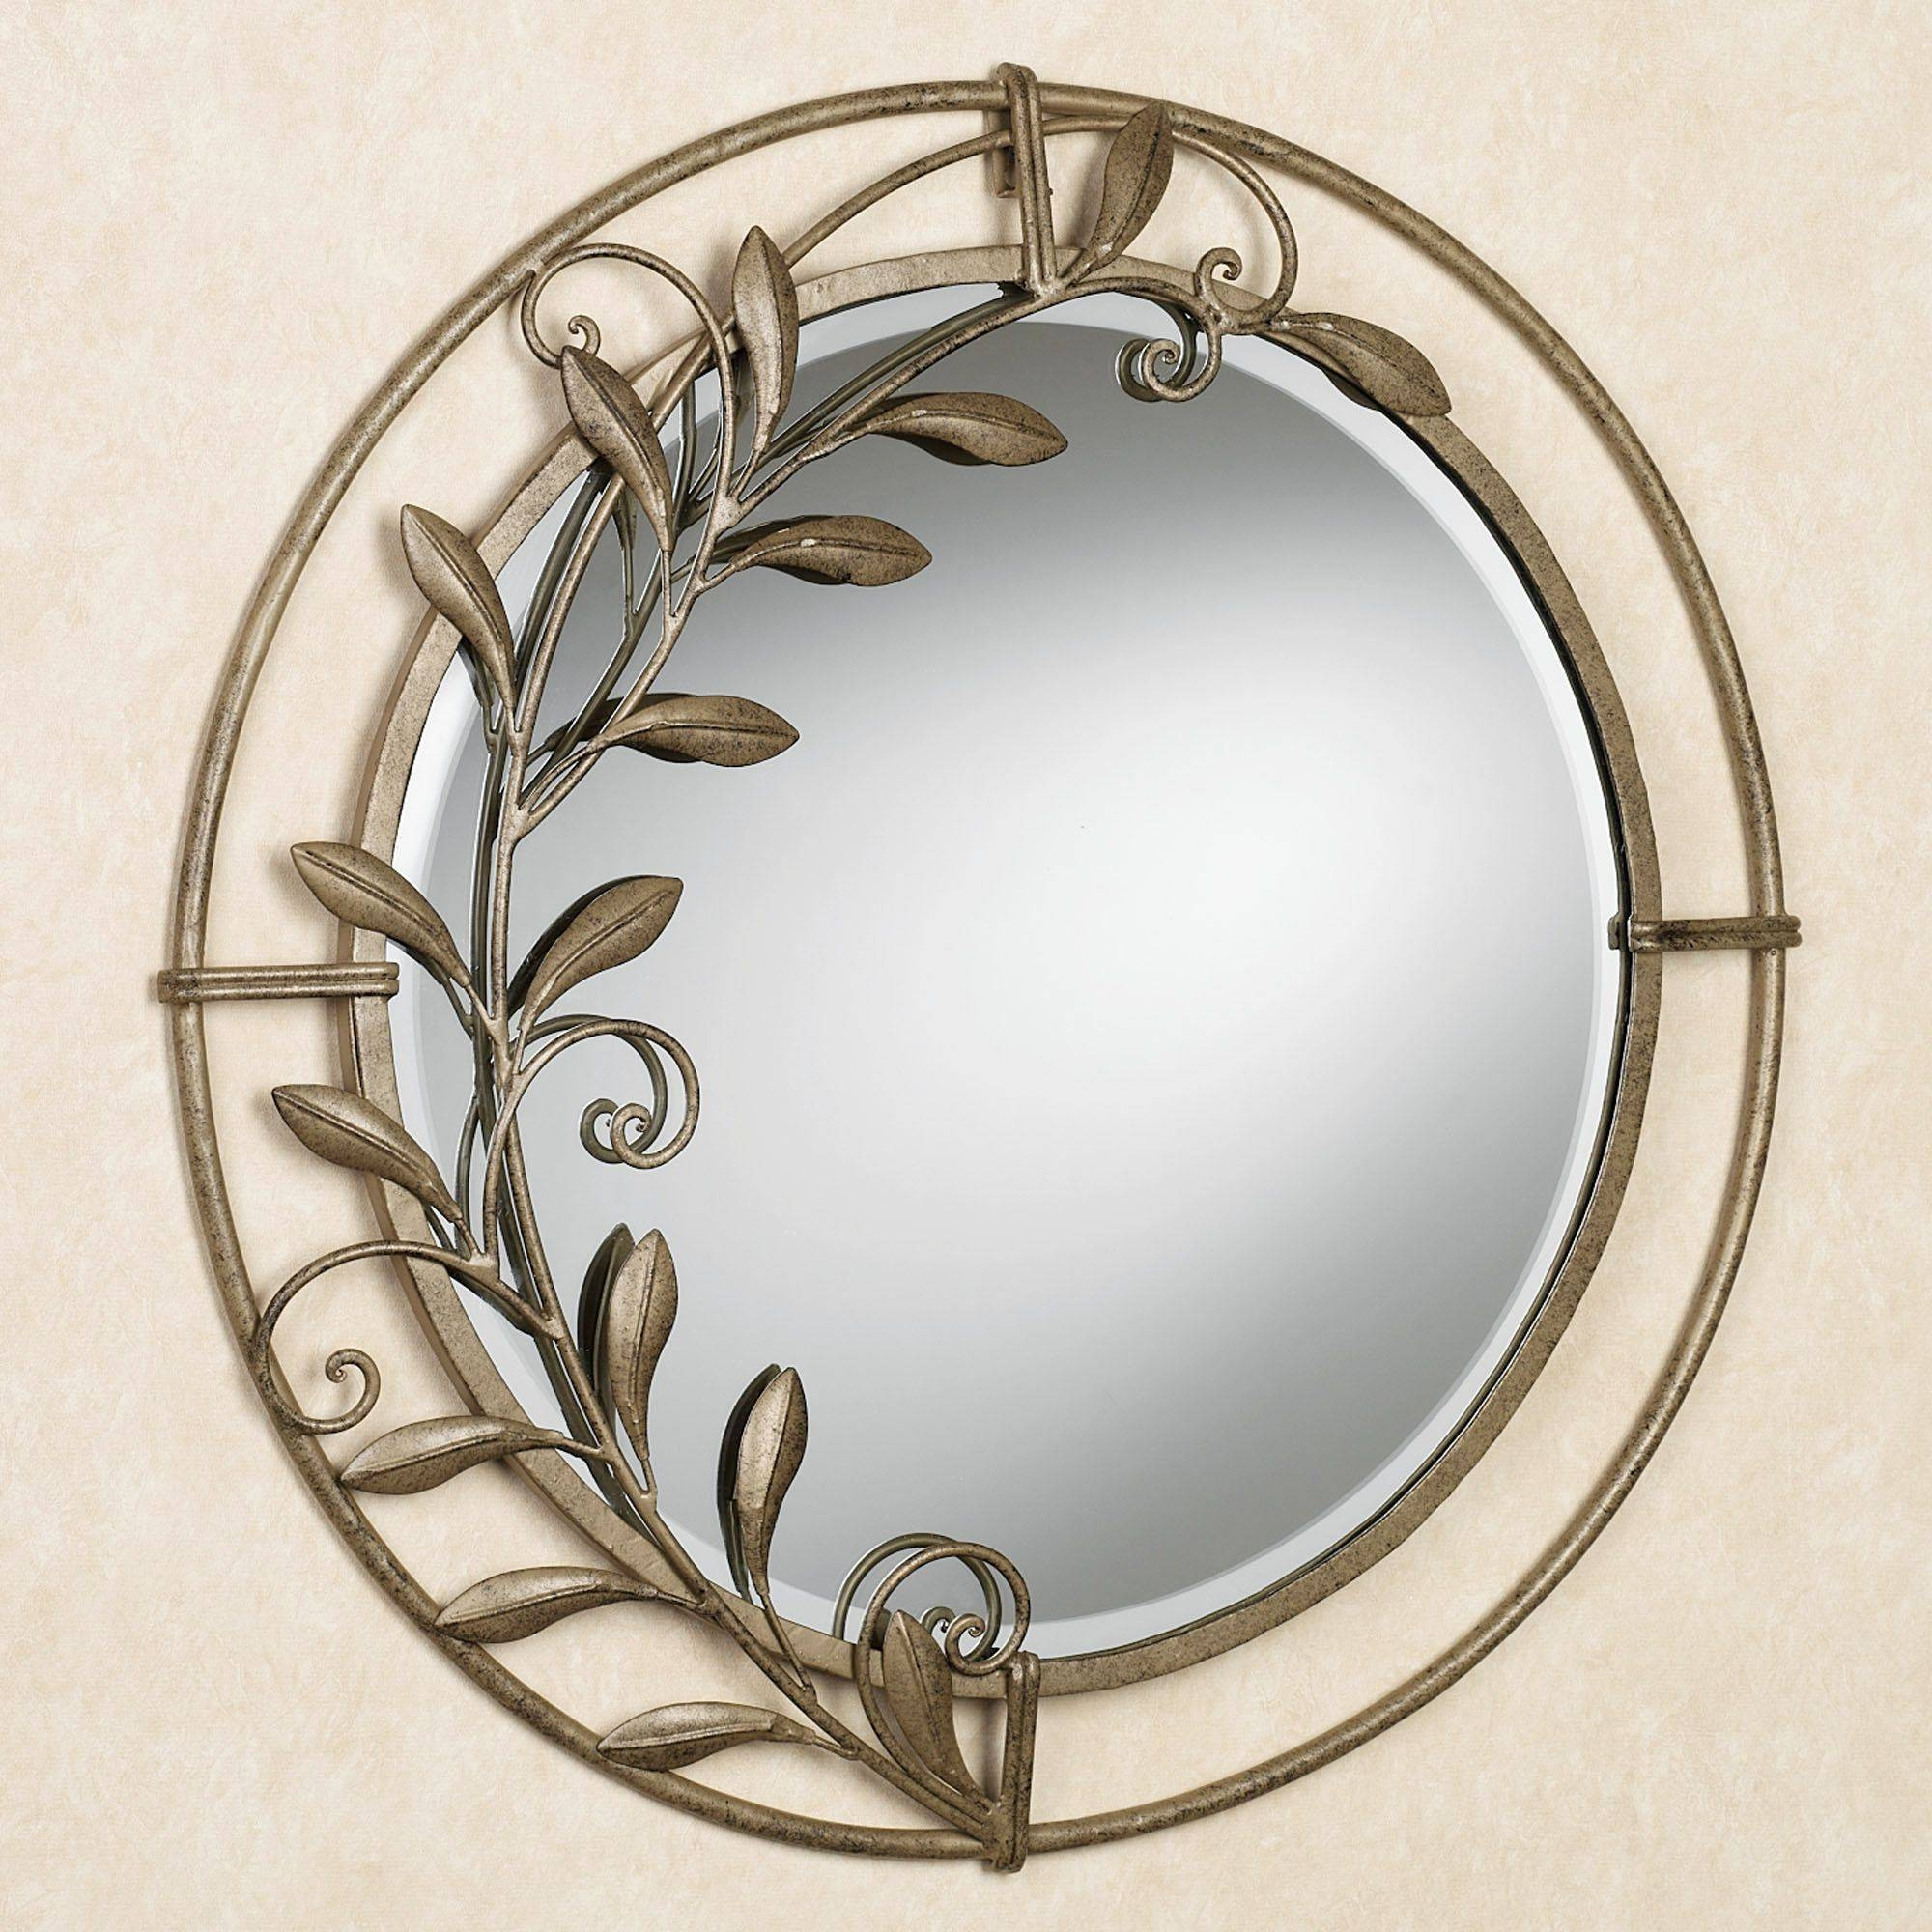 Entryway Wall Mirrors in Ornate Round Mirrors (Image 10 of 25)